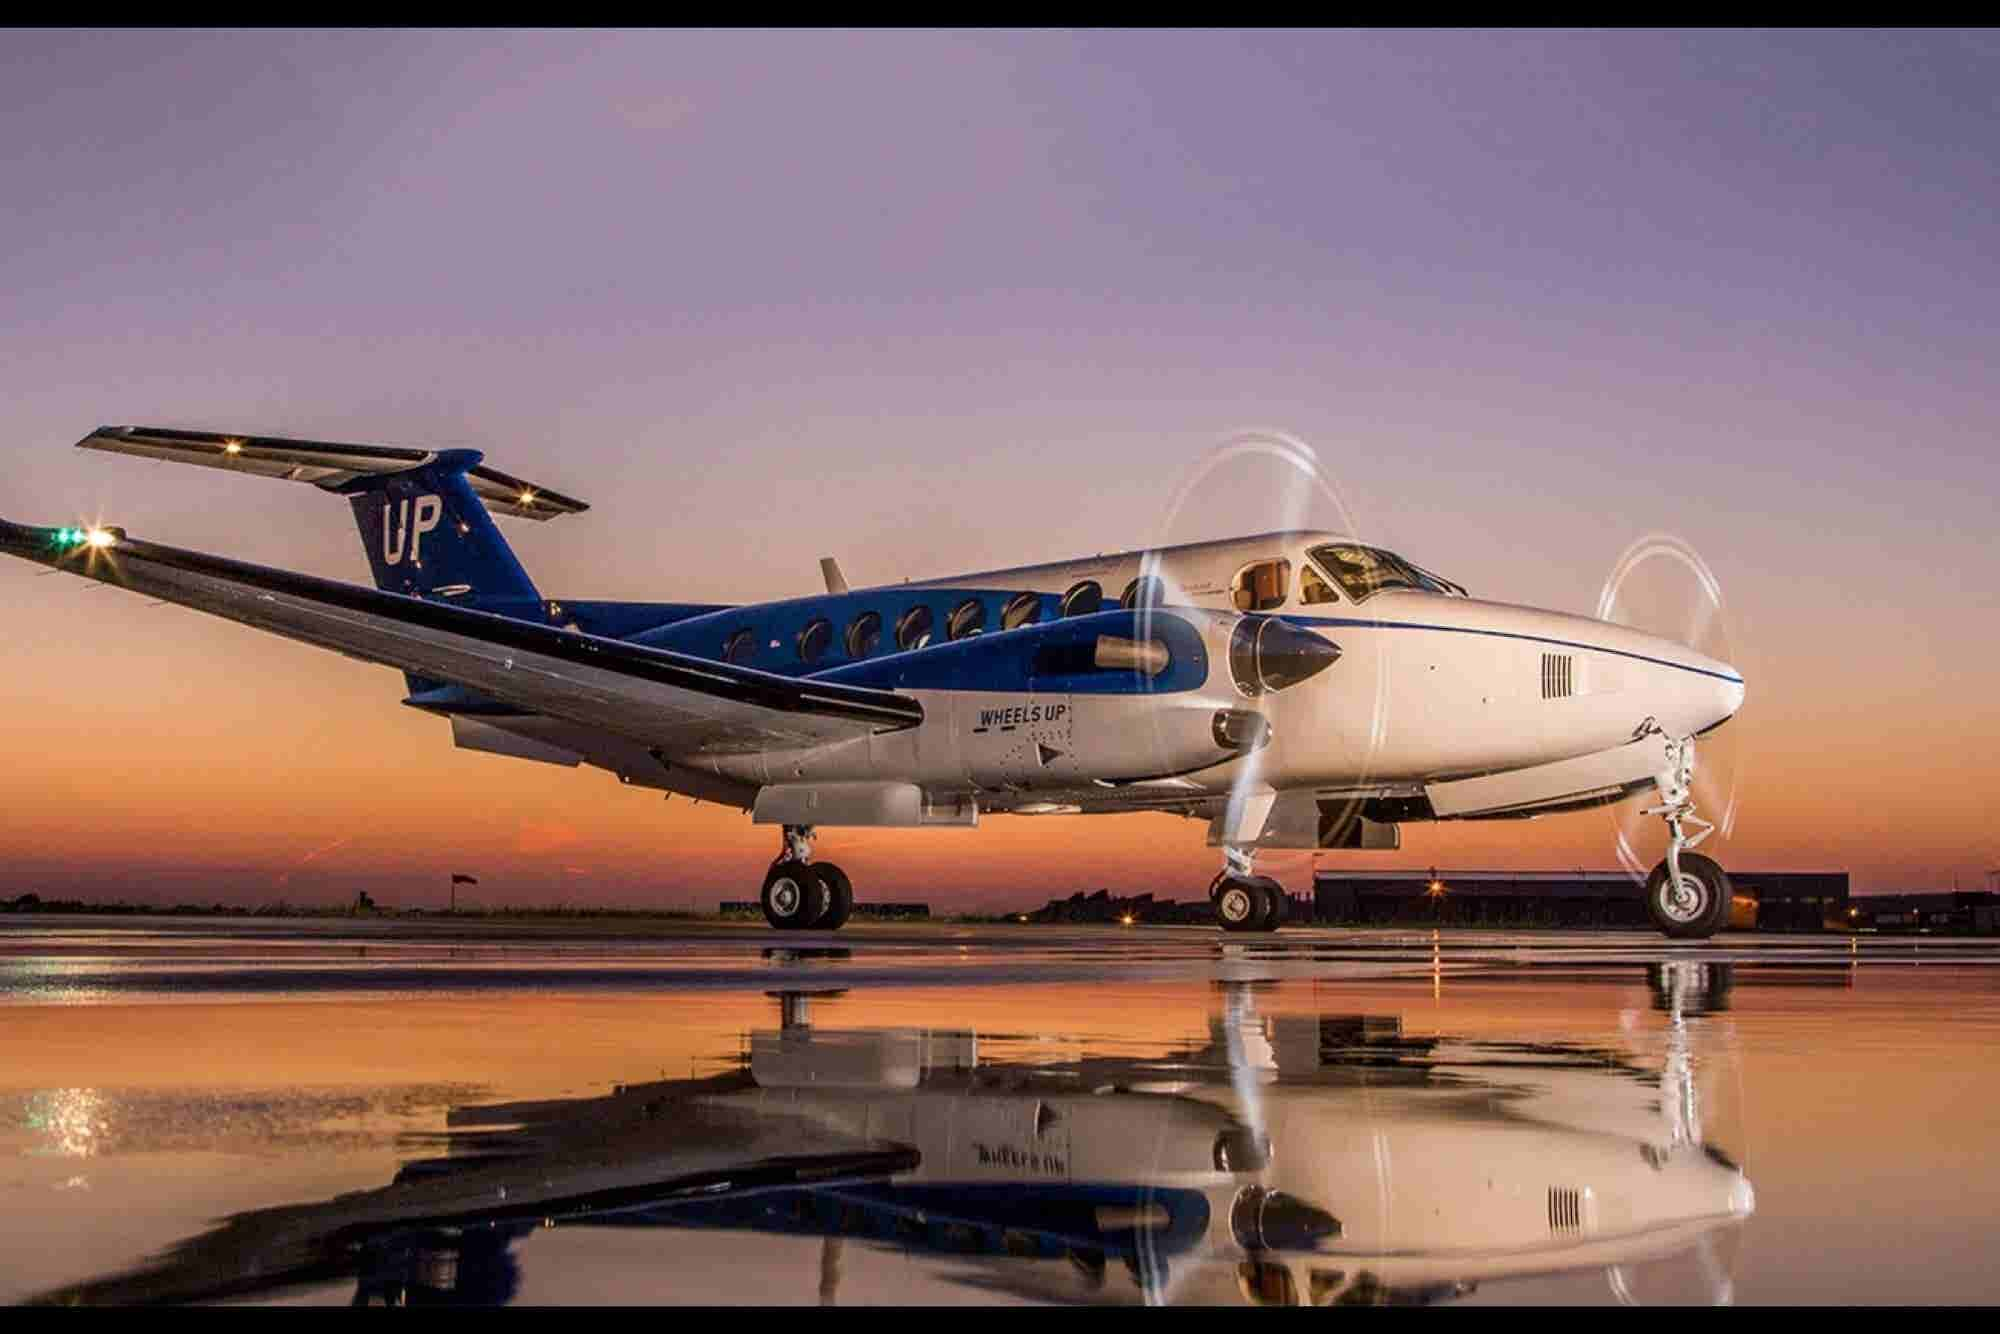 Private Aviation Company Wheels Up Raises $115M to Fuel App, Expansion